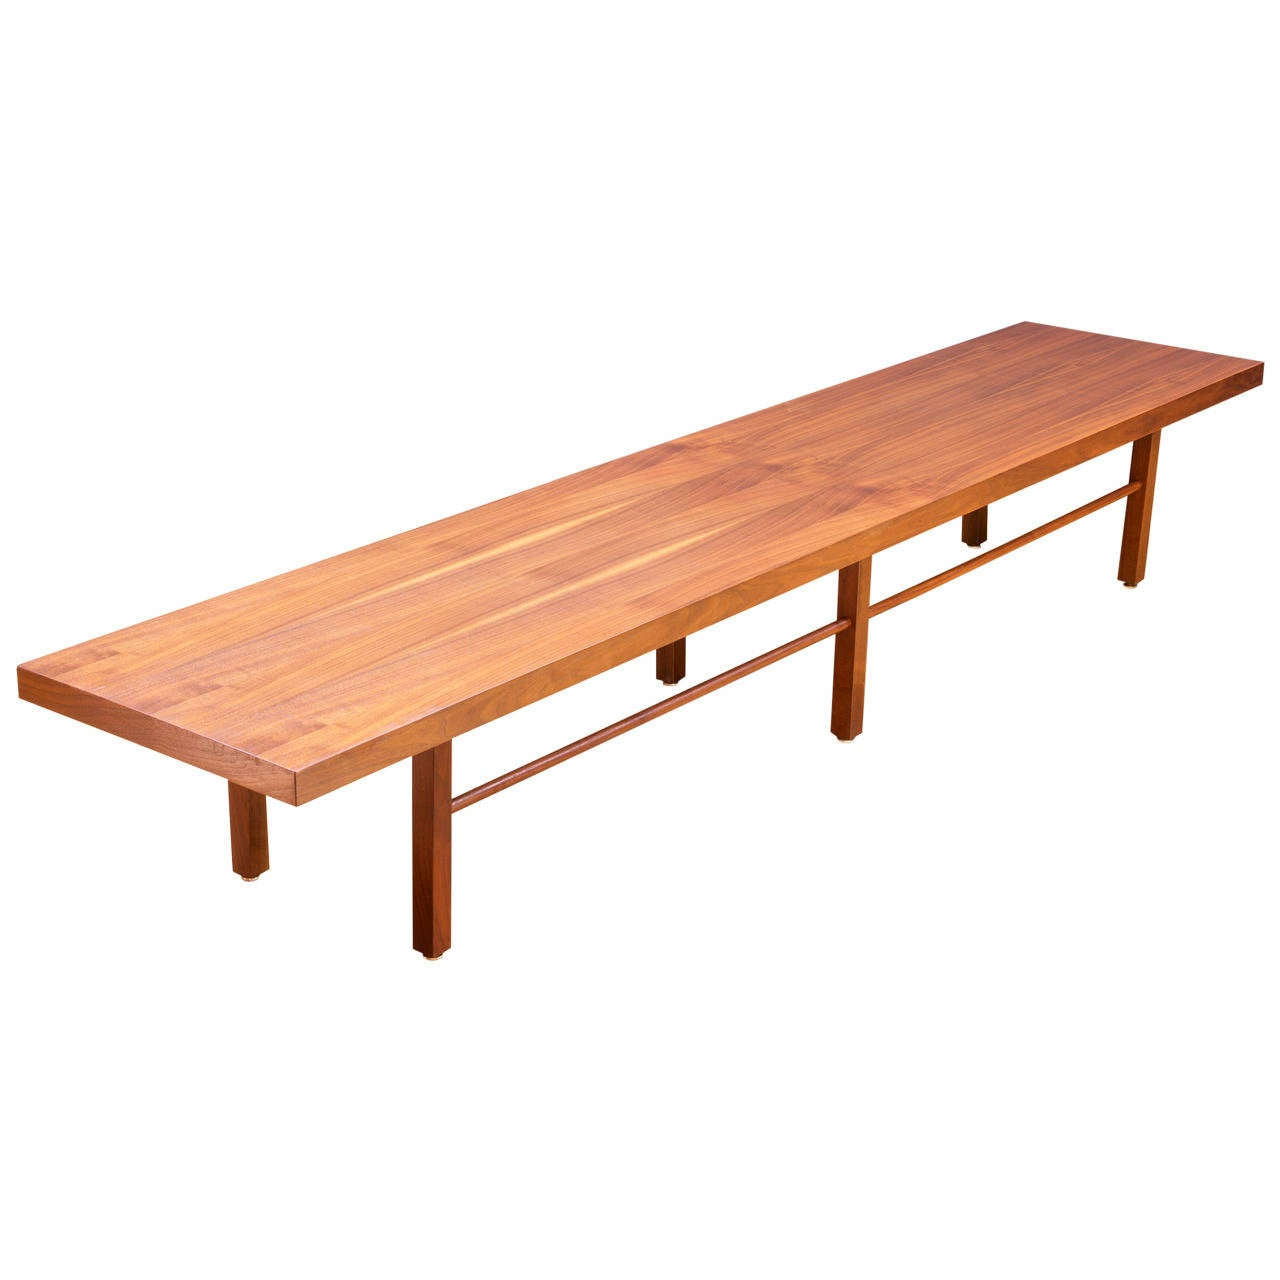 Low And Monumental Milo Baughman Walnut Coffee Table Bench At 1stdibs